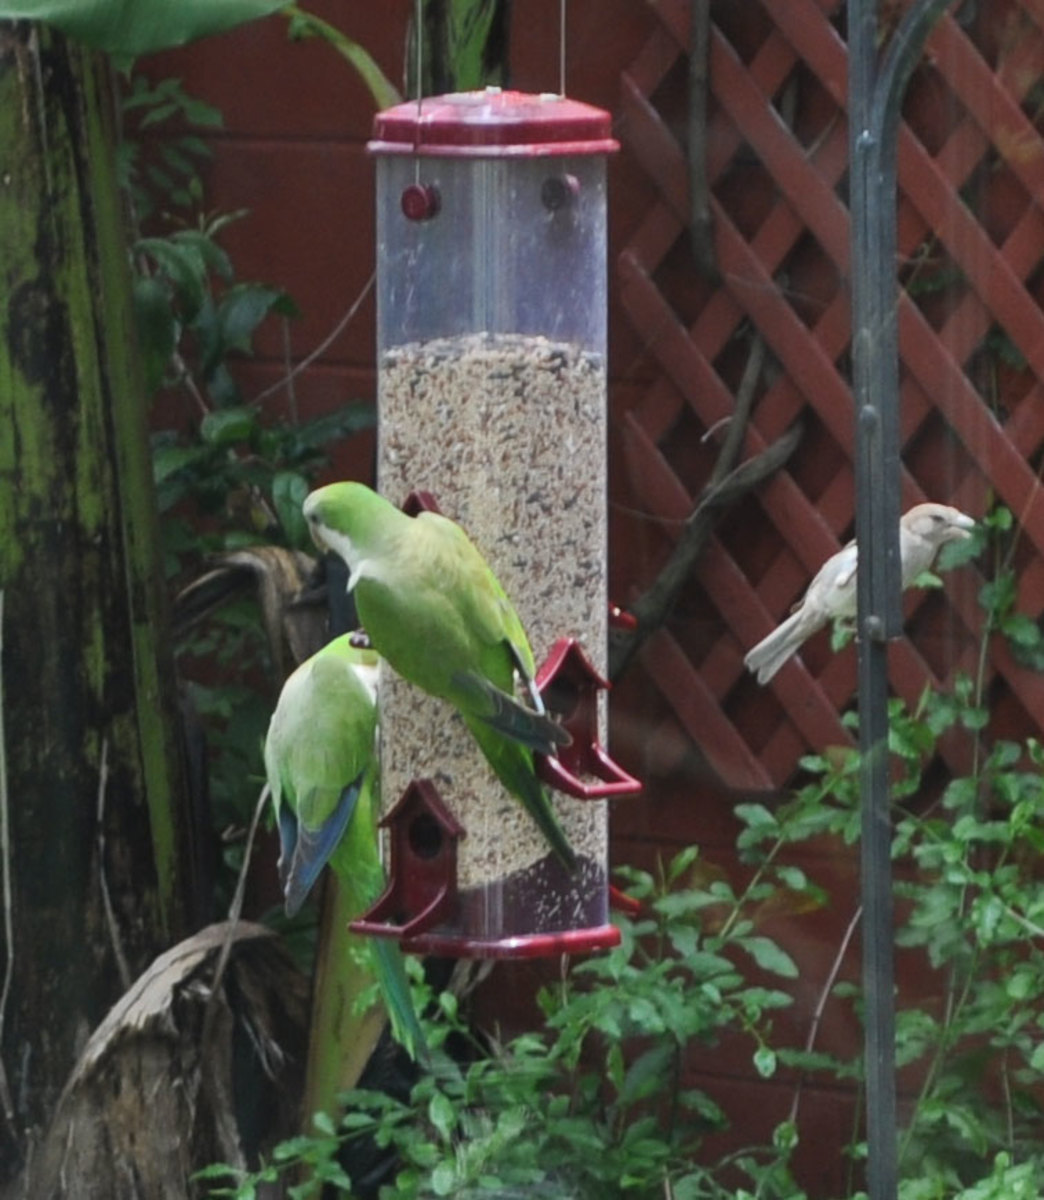 Wild parrots at backyard bird feeder